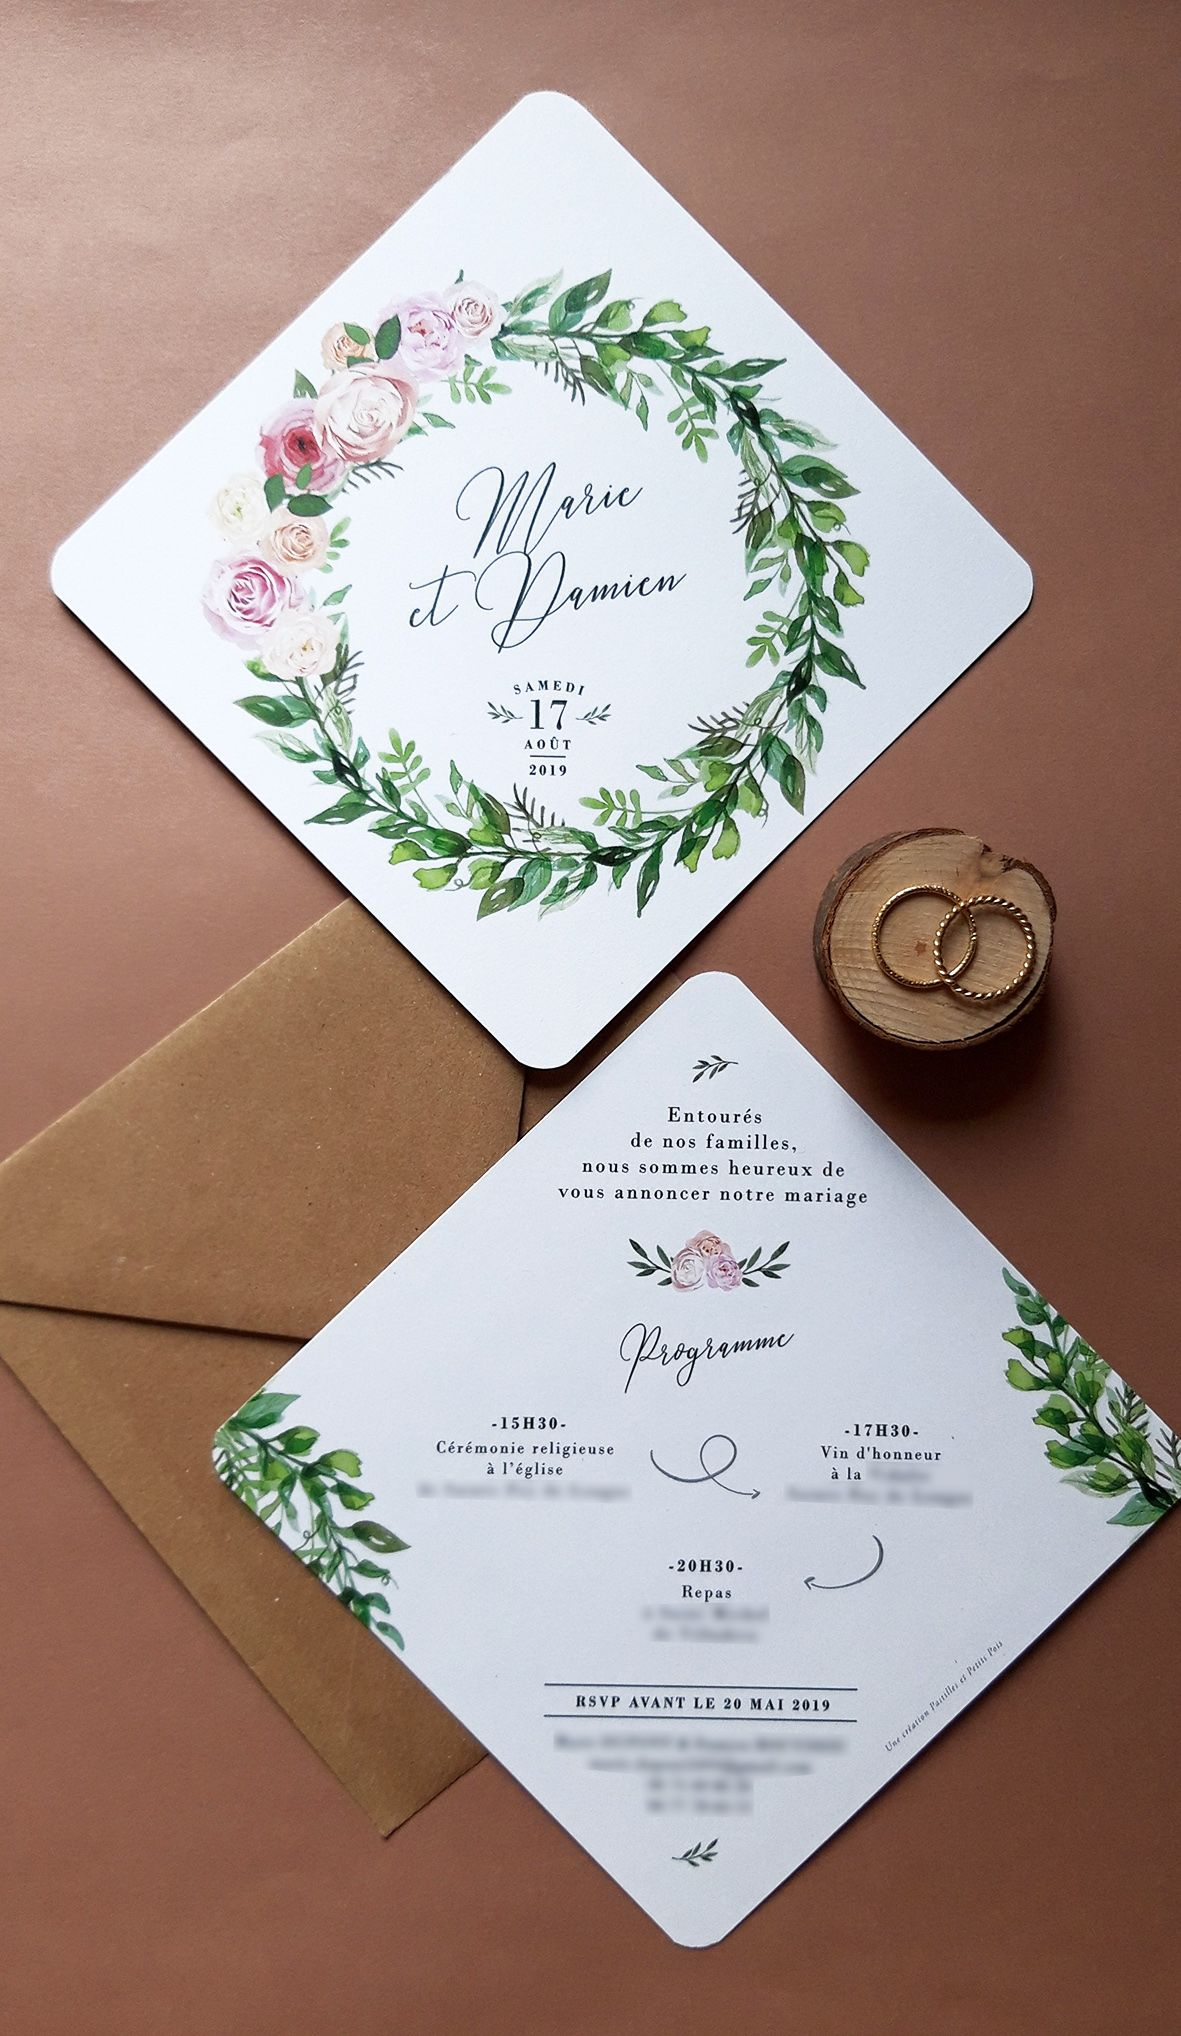 Faire-part de mariage Tropical par en 2019 | Faire part ...